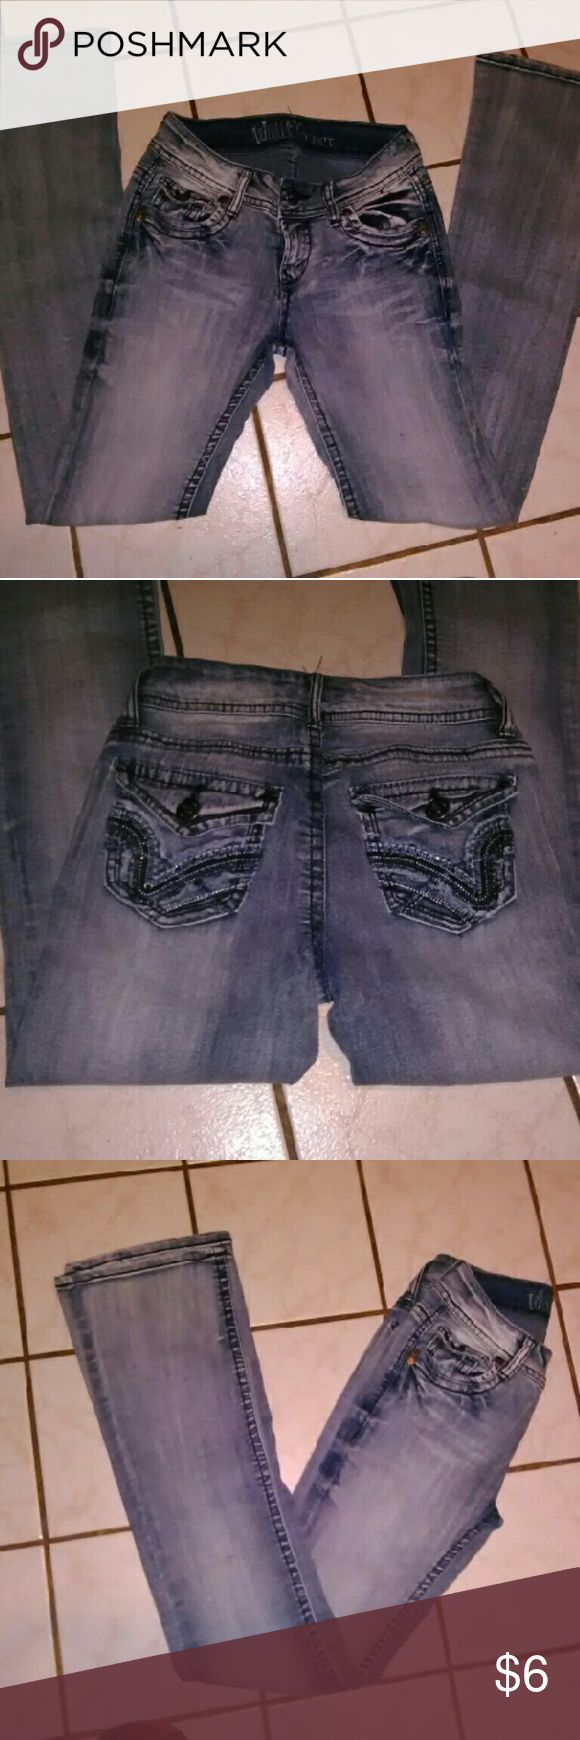 Wallflower jeans Cute & stretchy jeans, no stains,freys or anything. Wallflower Jeans